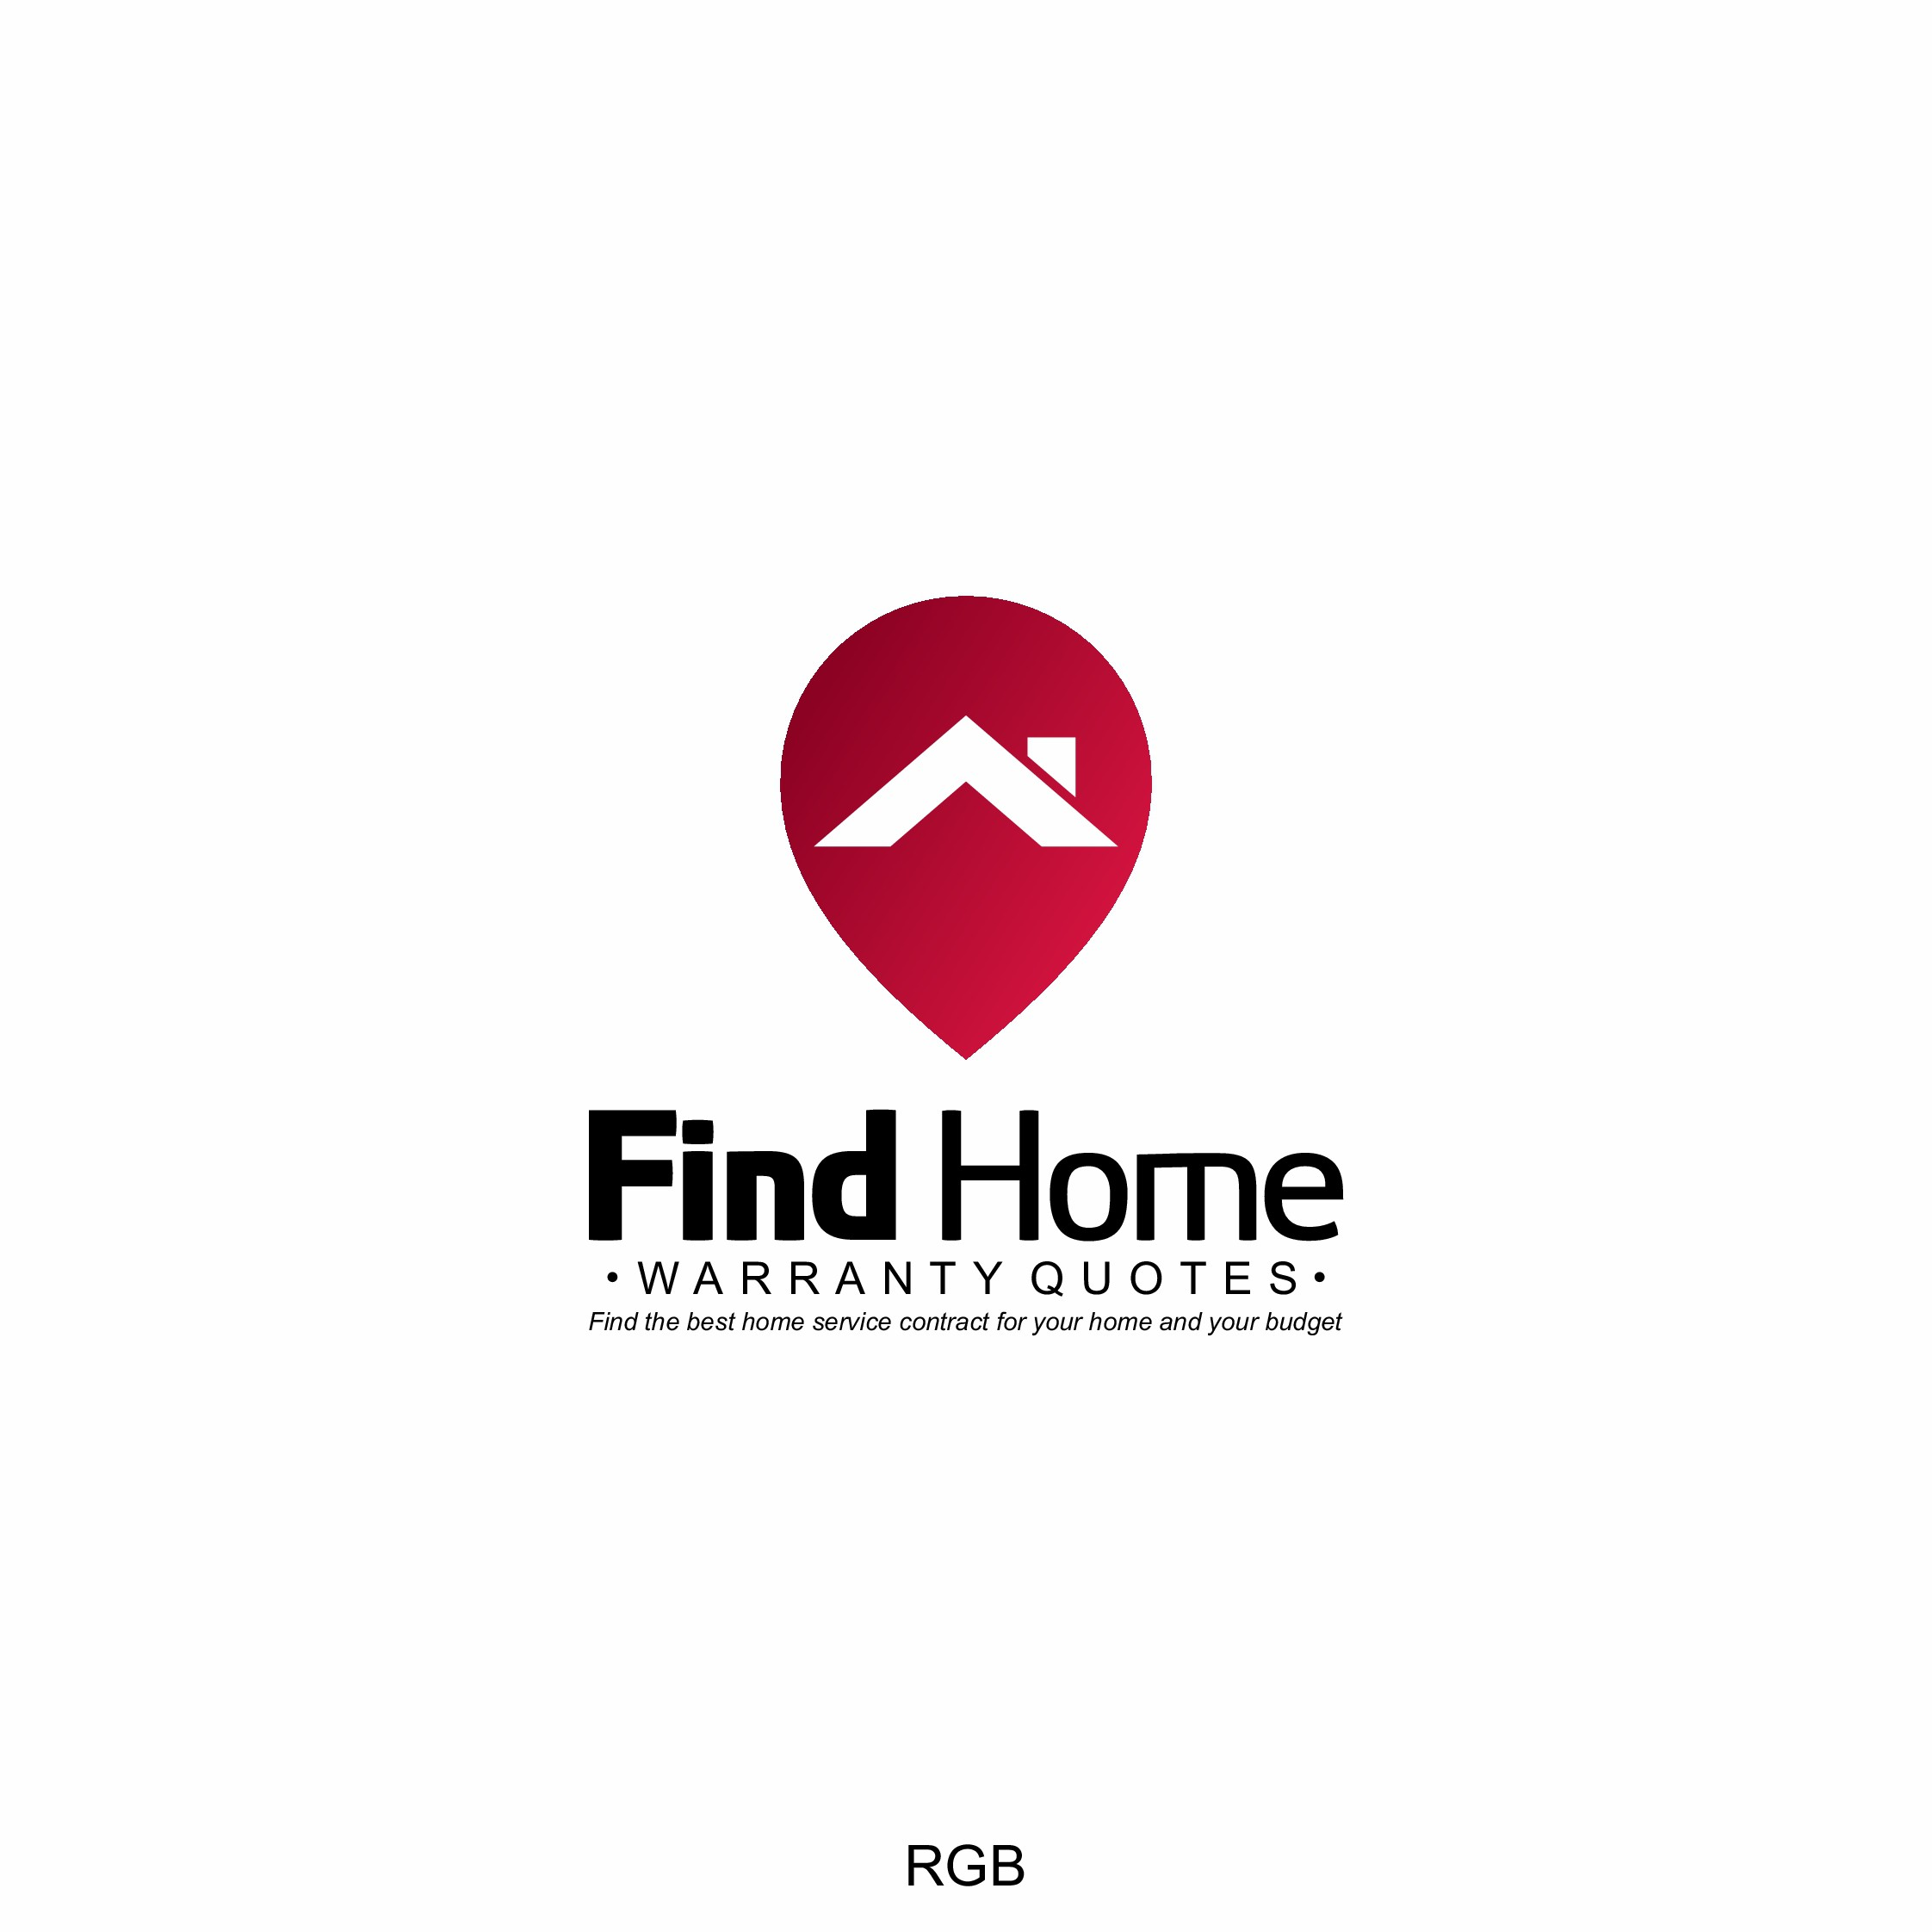 Design a logo that pops for a homeowner services landing page.